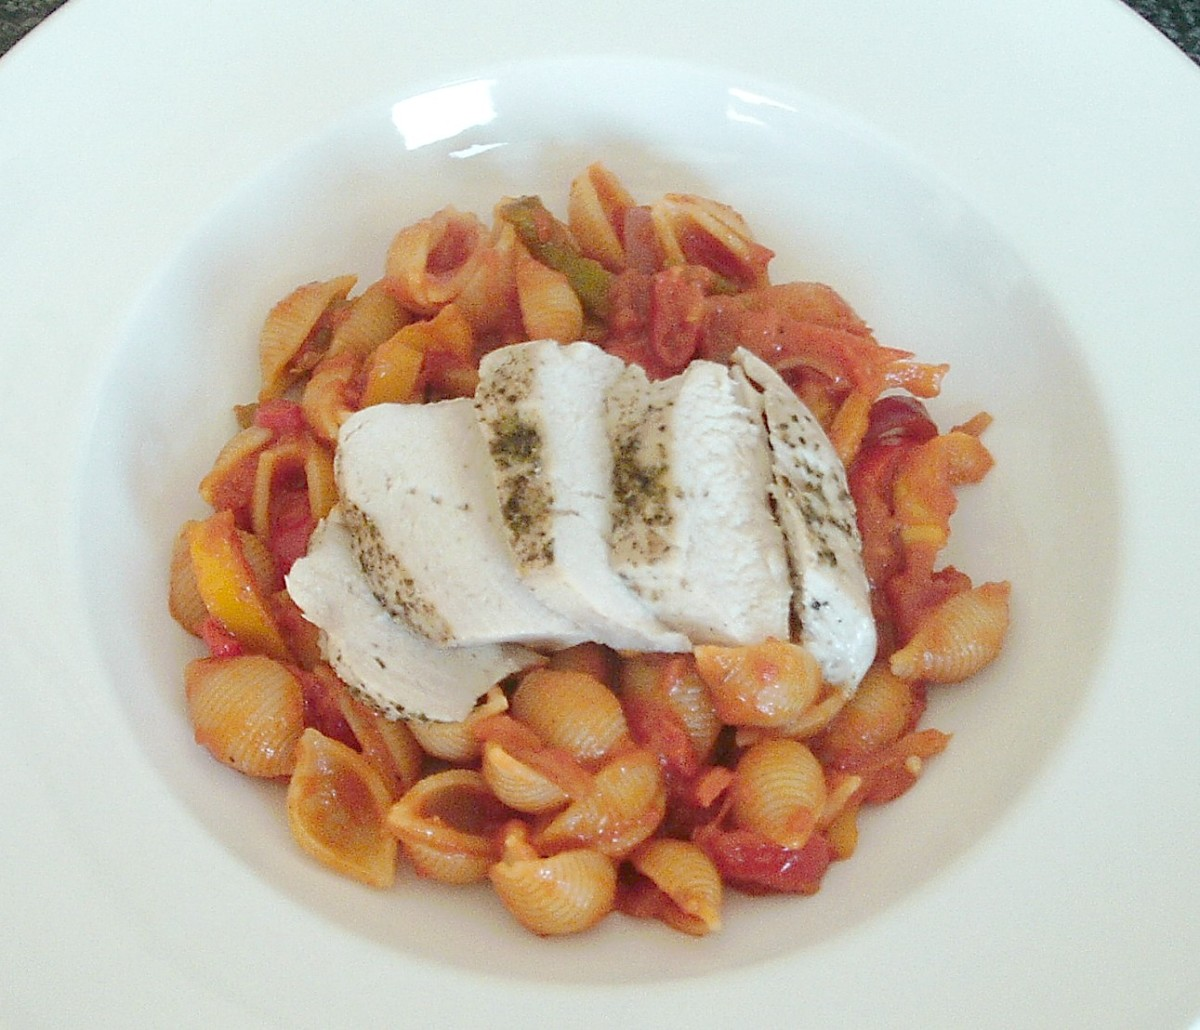 Simply baked chicken breast with herbs is served on a bed of conchiglie pasta in tomato sauce